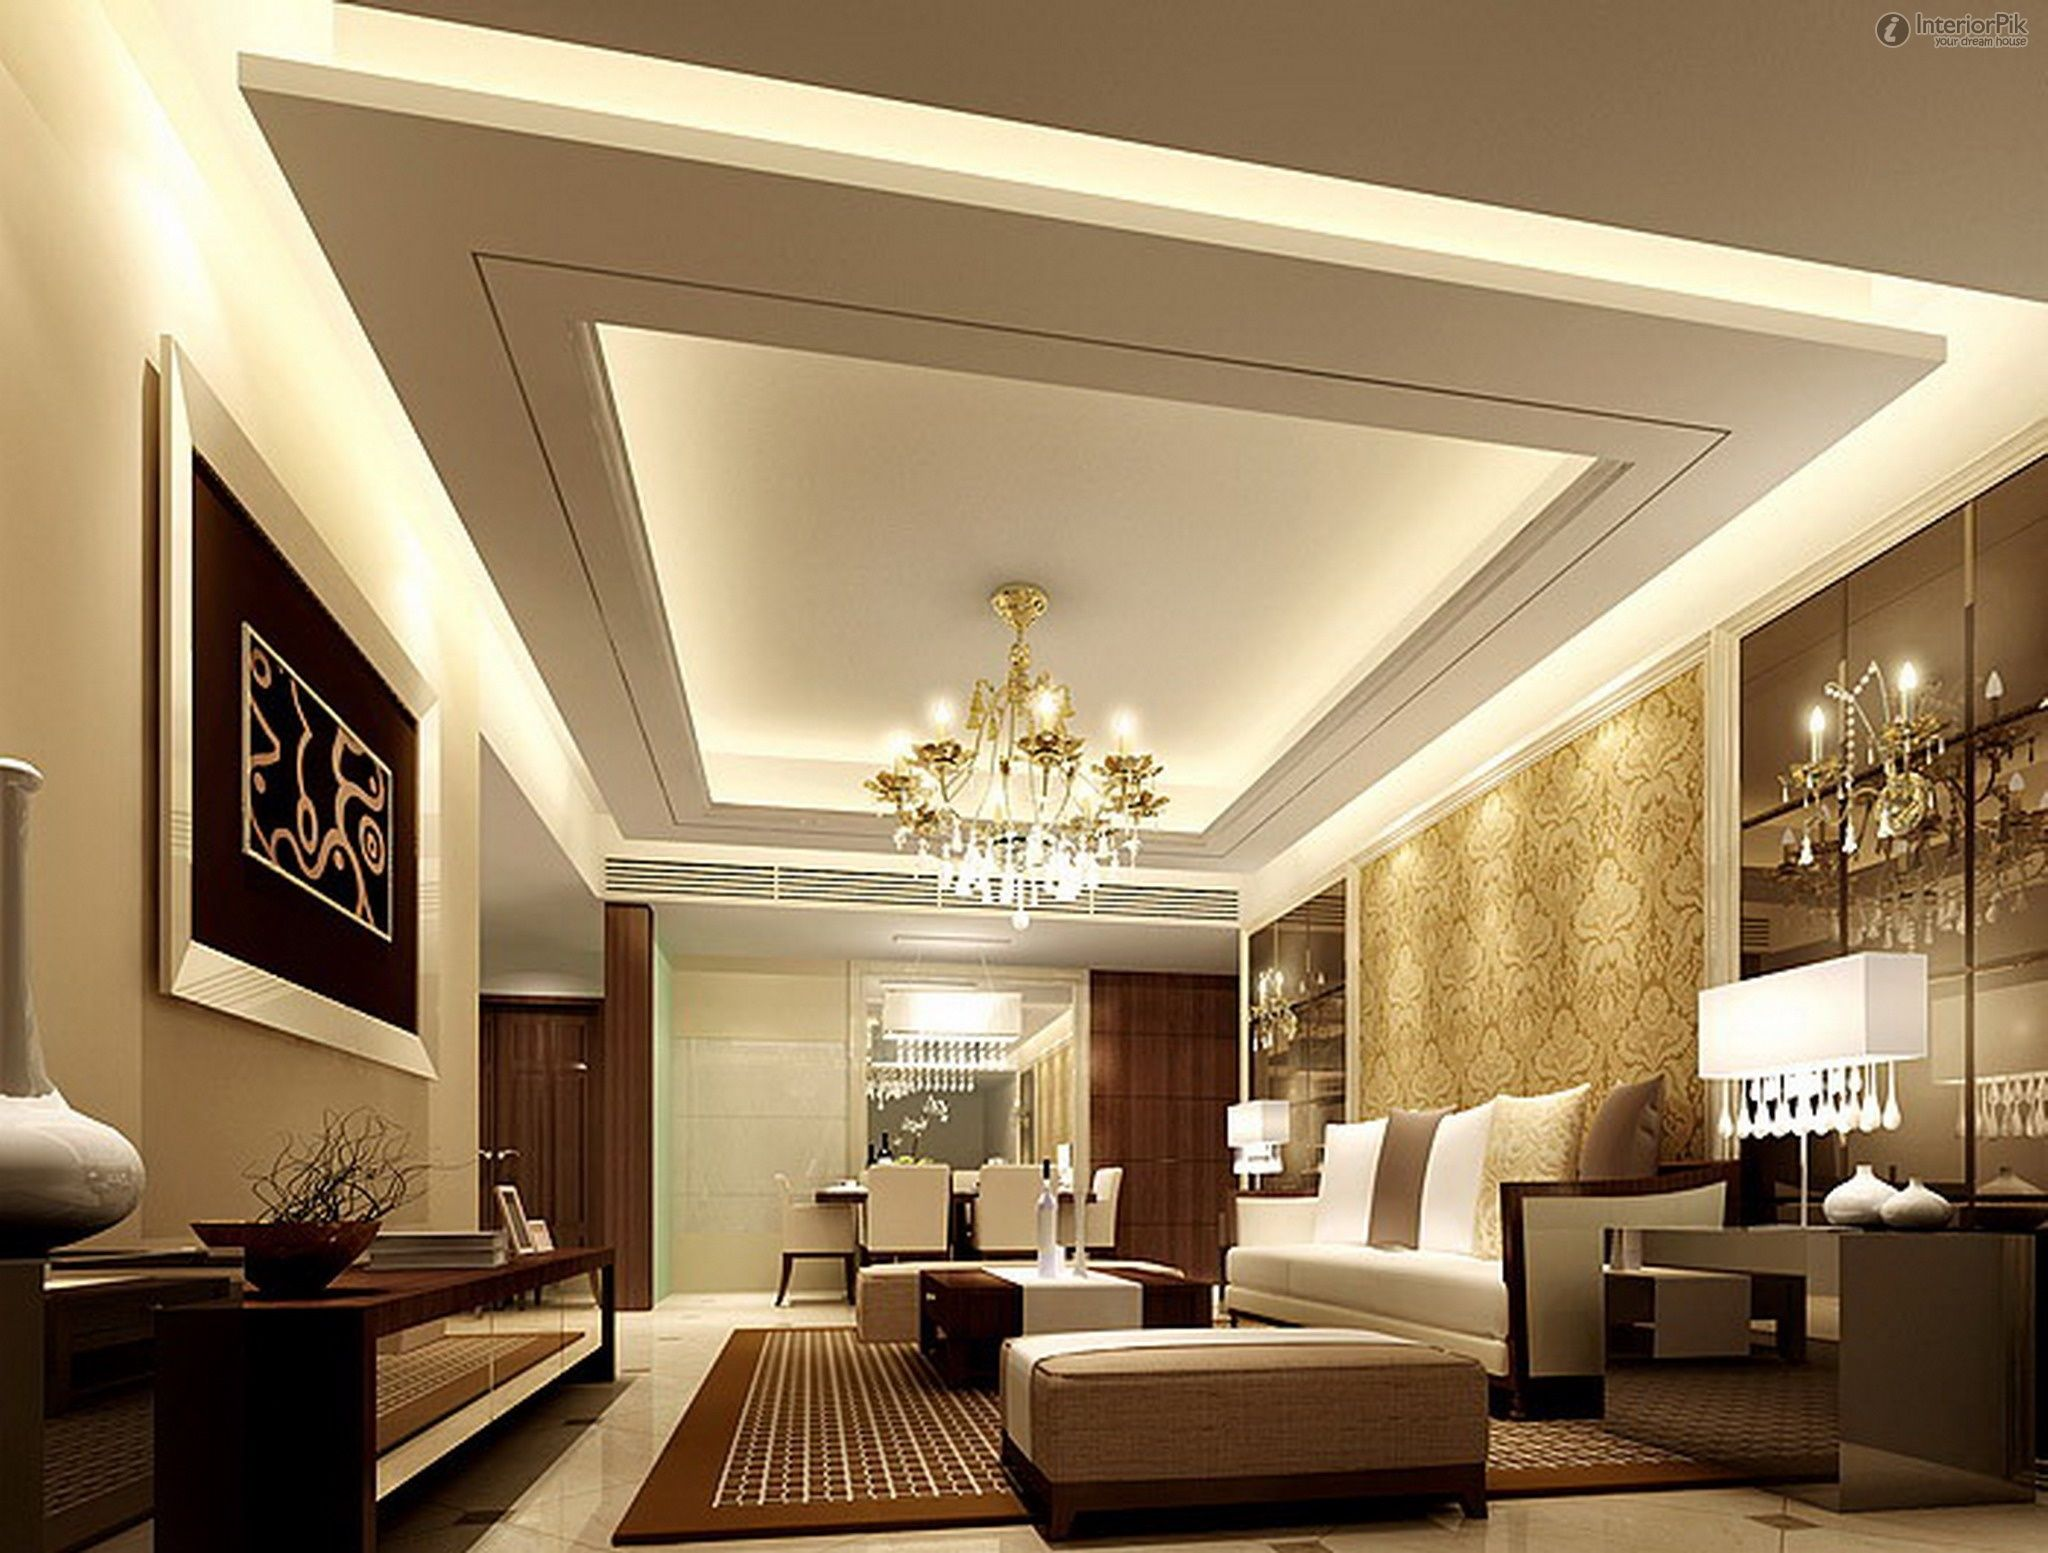 Ceiling Designs for Your Living Room | Simple false ...